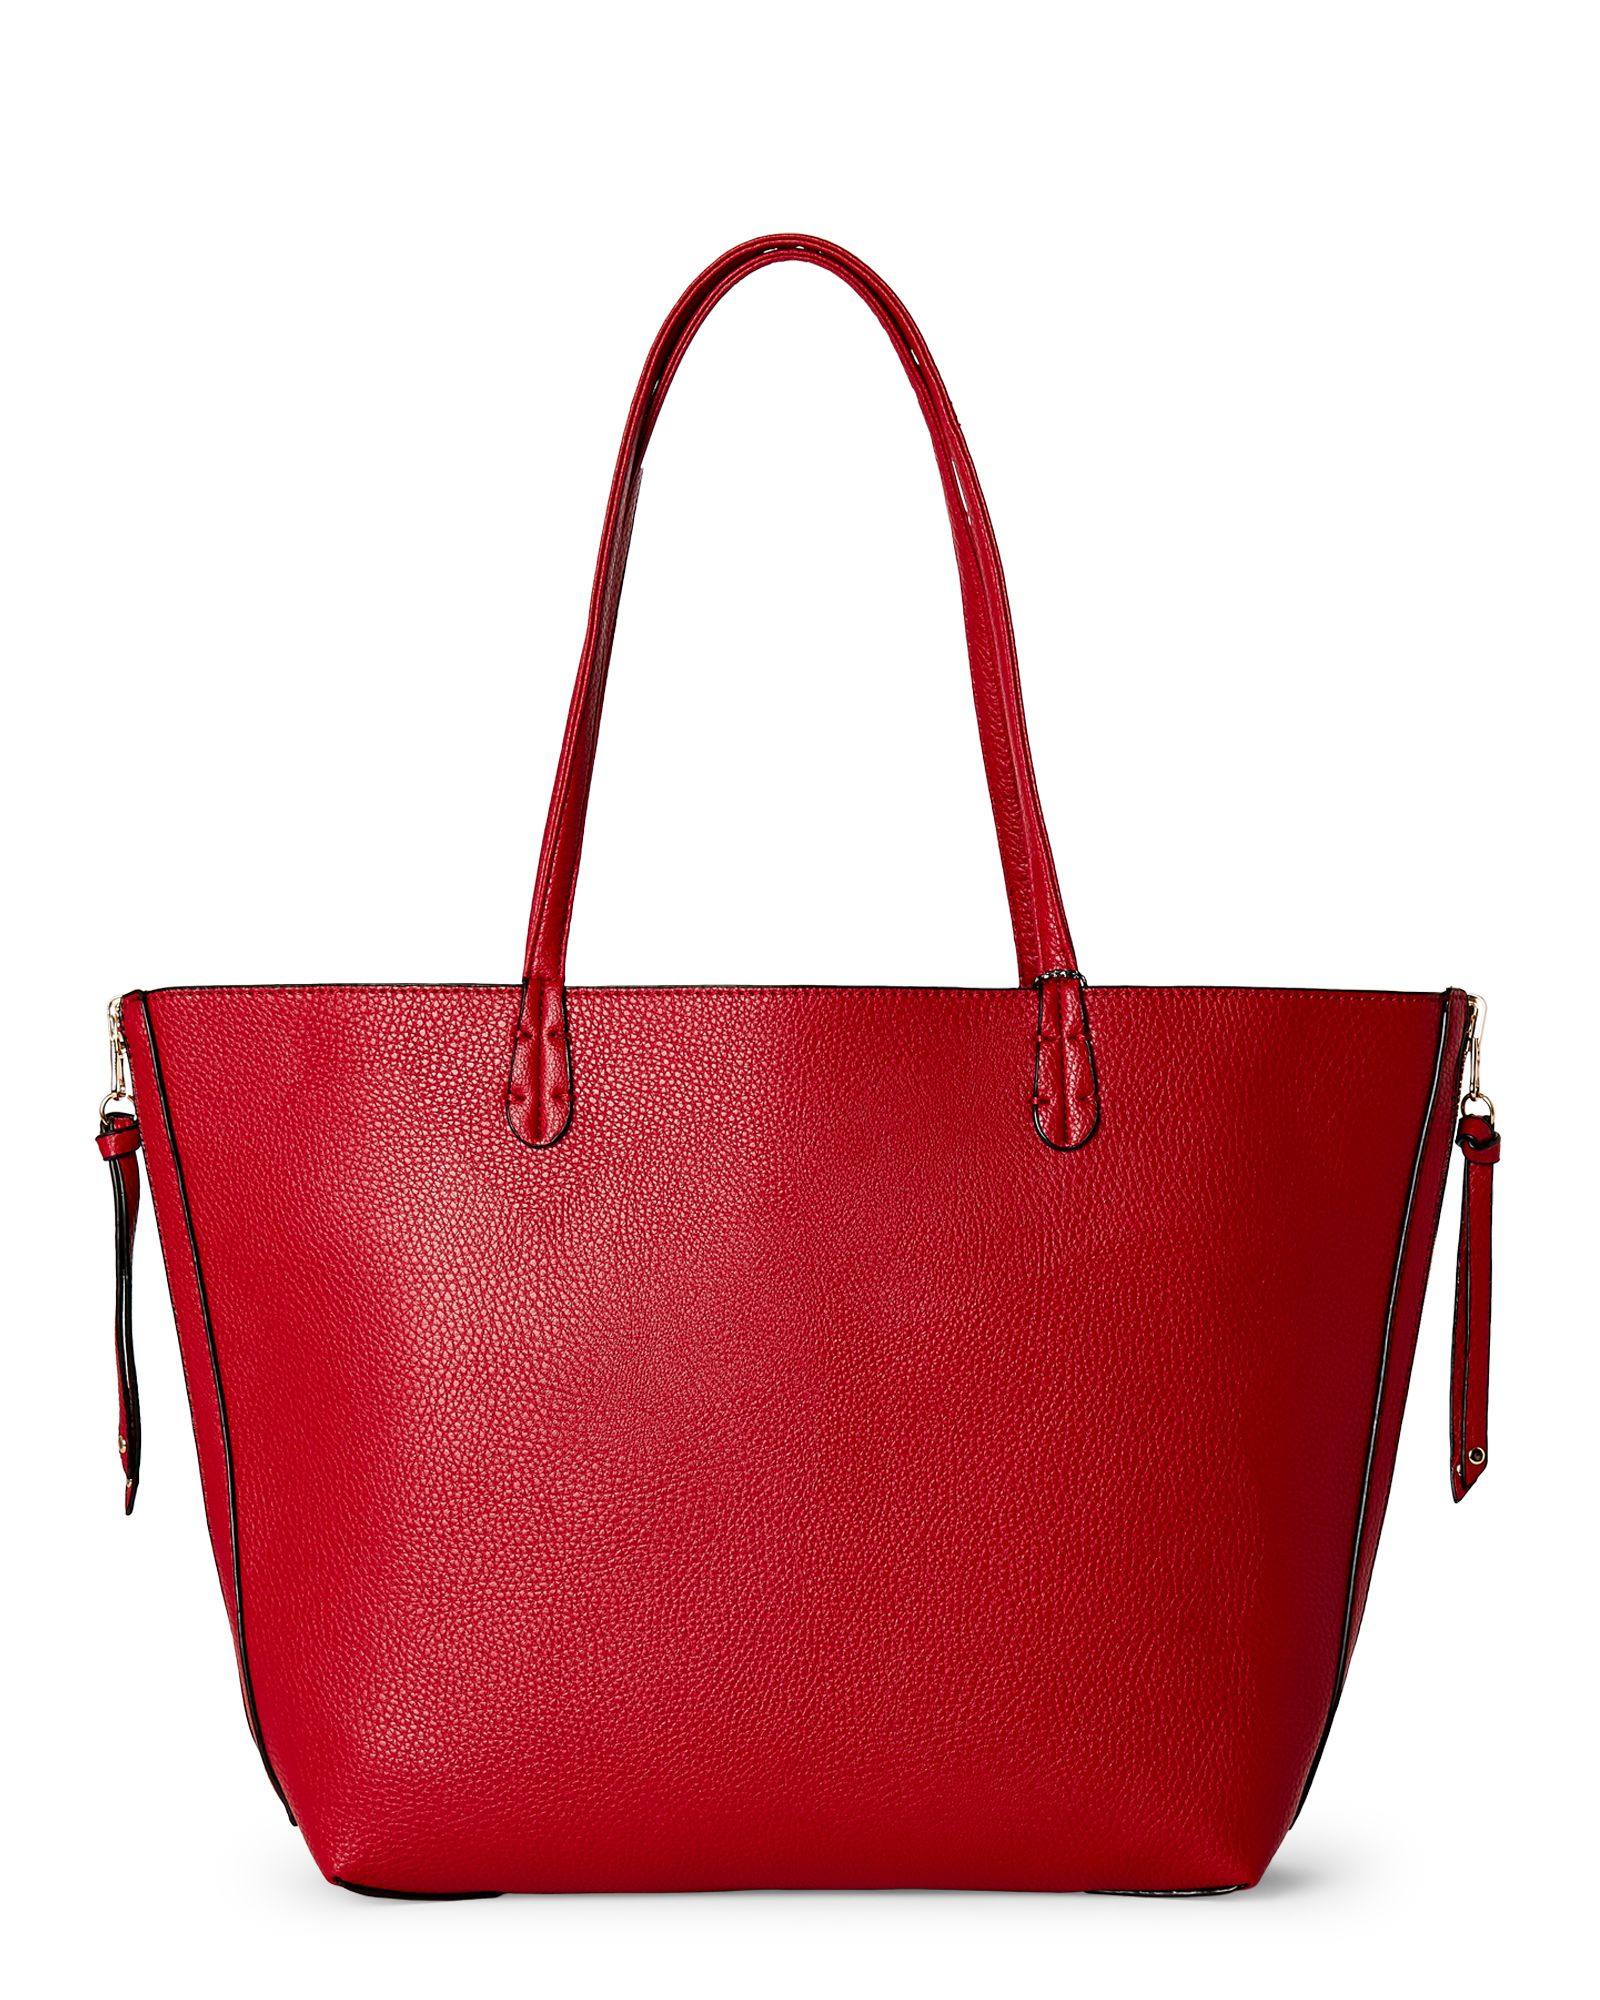 Imoshion Red/Black Faux Leather Reversible Tote